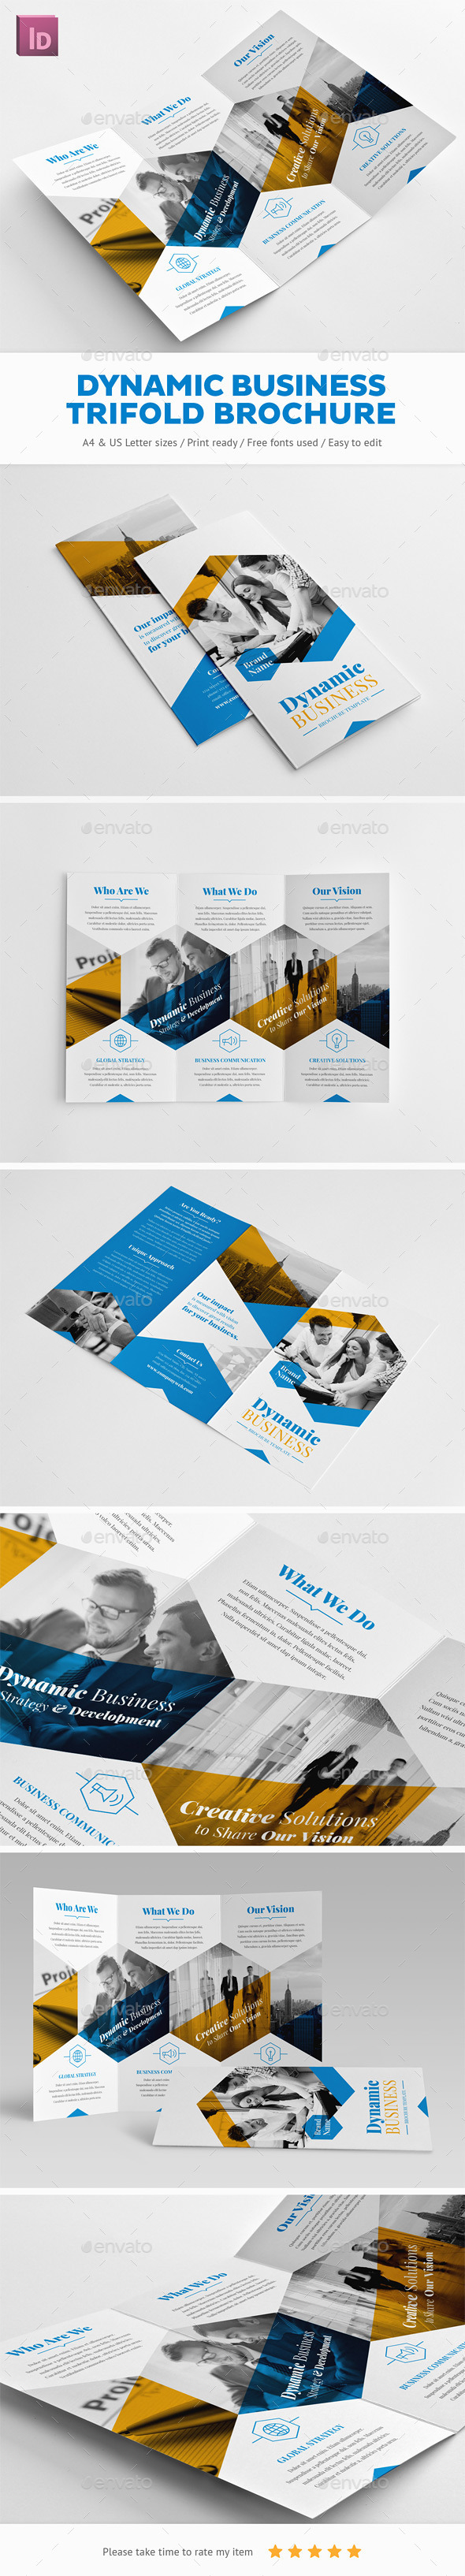 Dynamic Business Trifold Brochure - Corporate Brochures